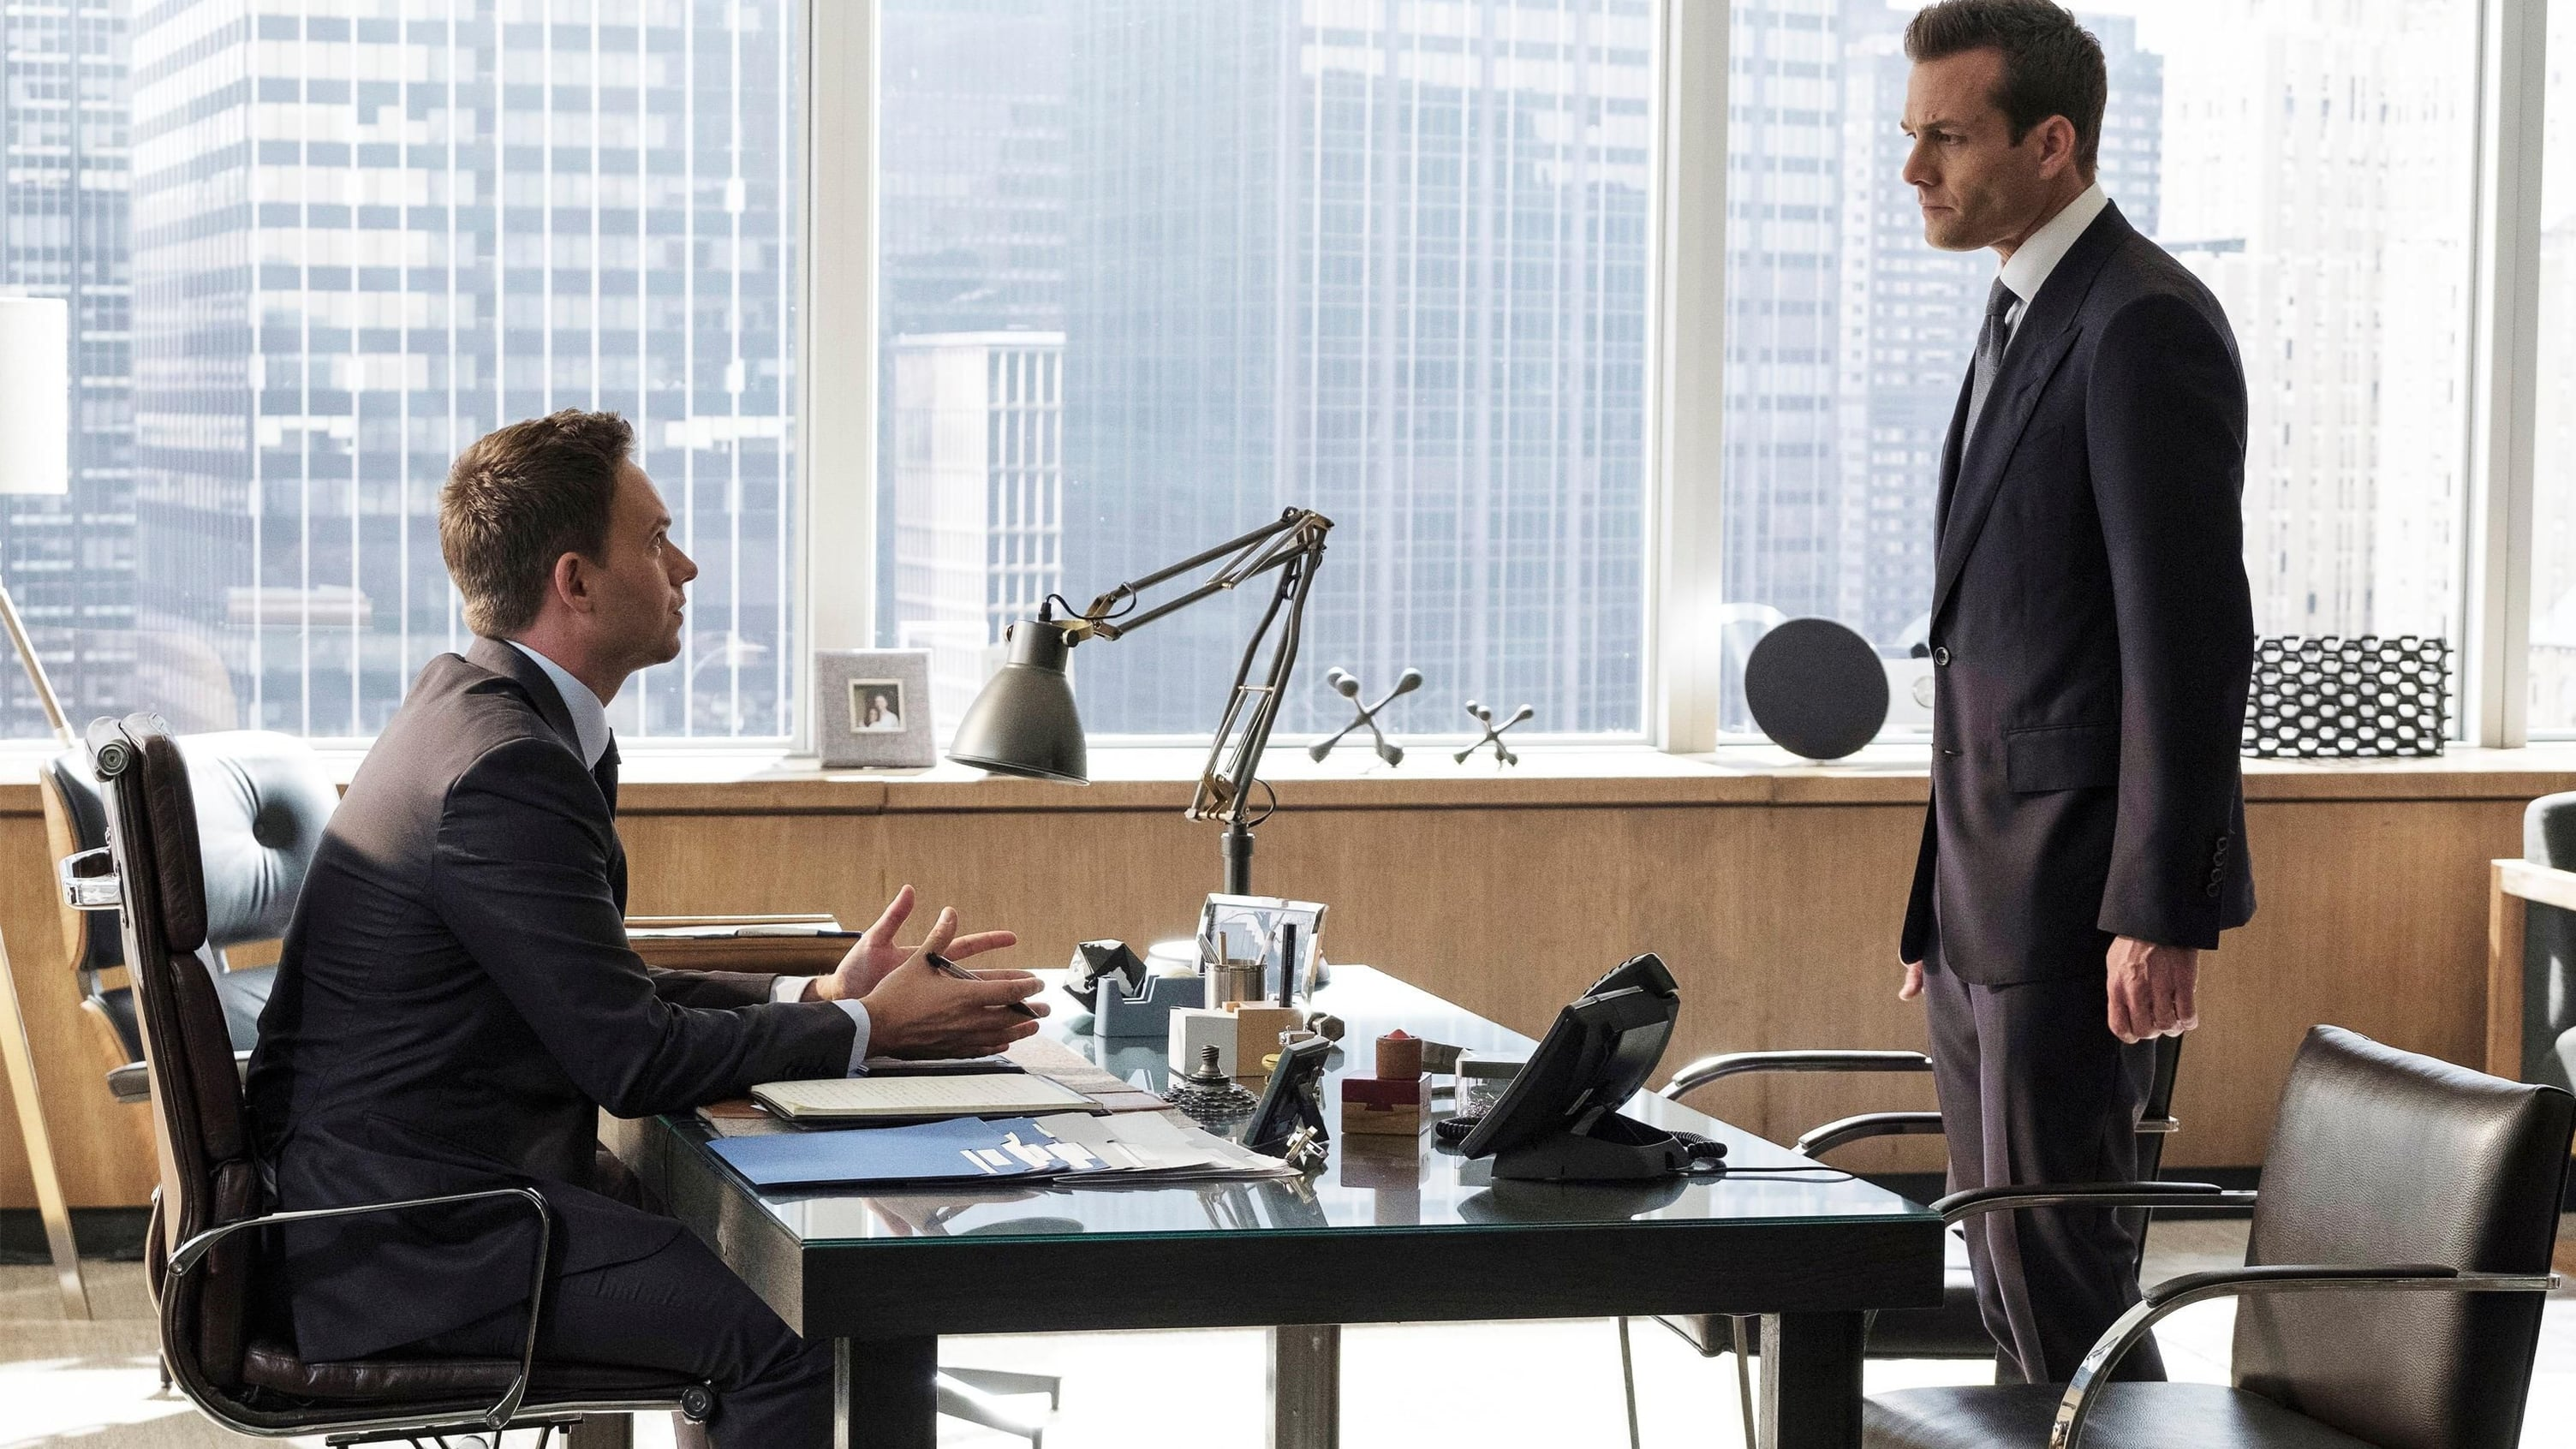 Suits - Season 7 Episode 12 : Bad Man